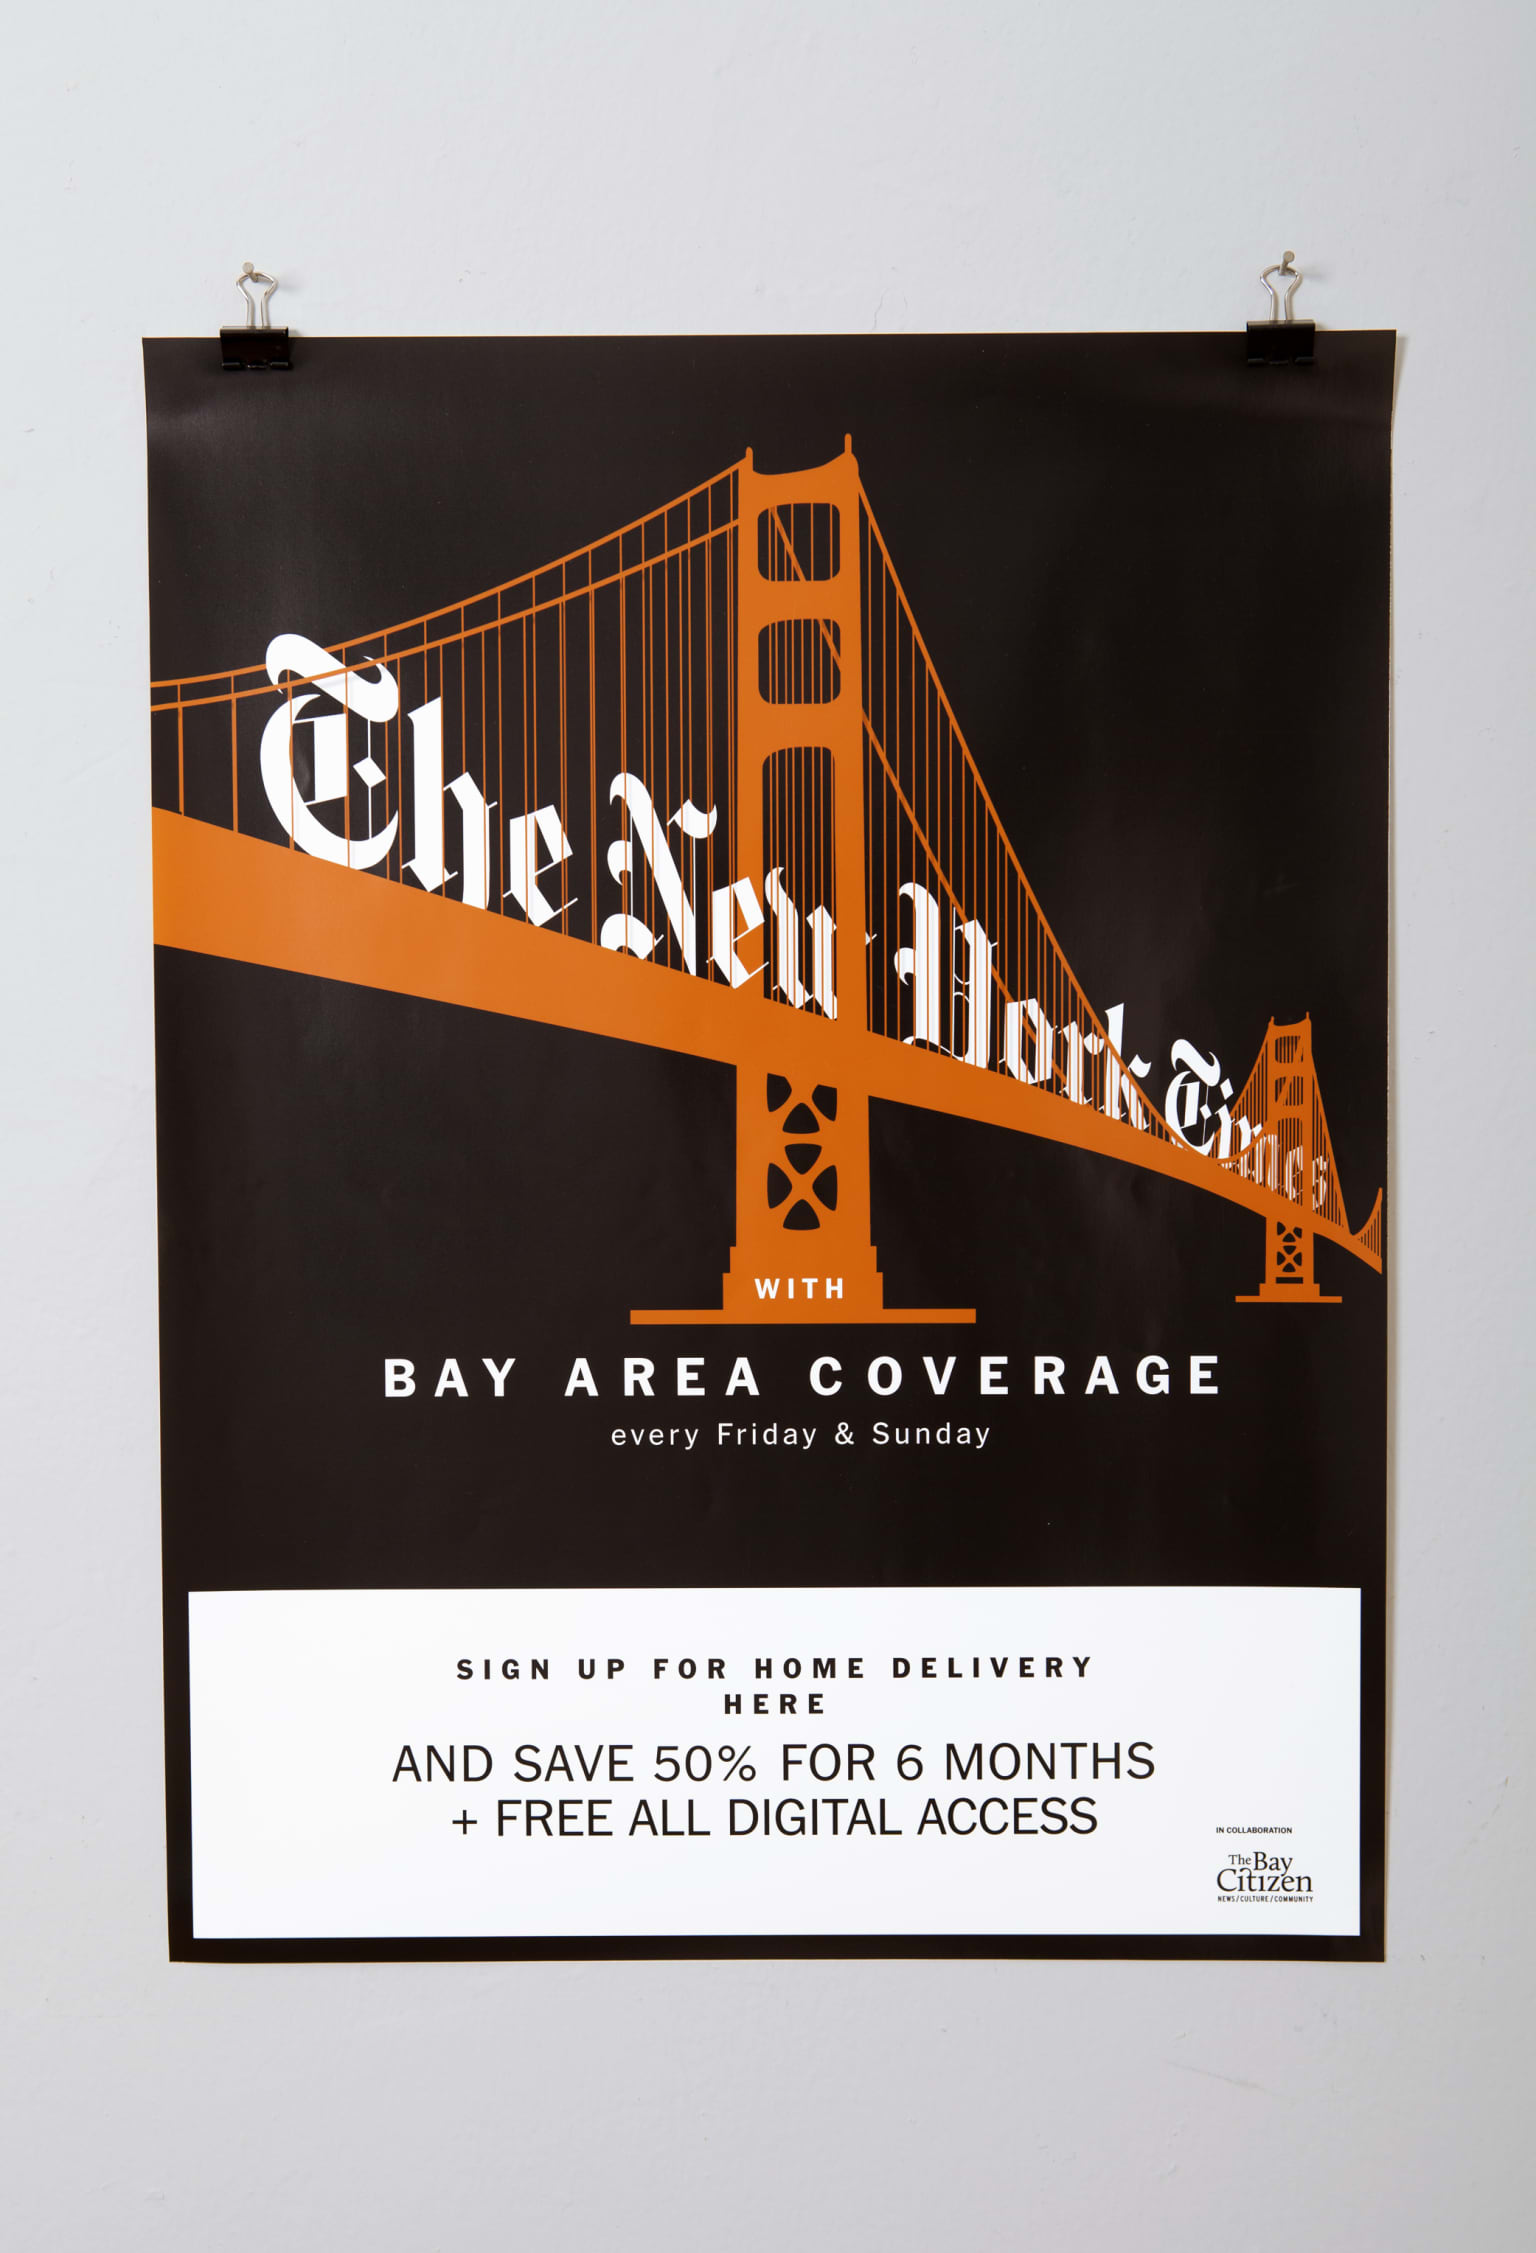 The New York Times Ad Campaign